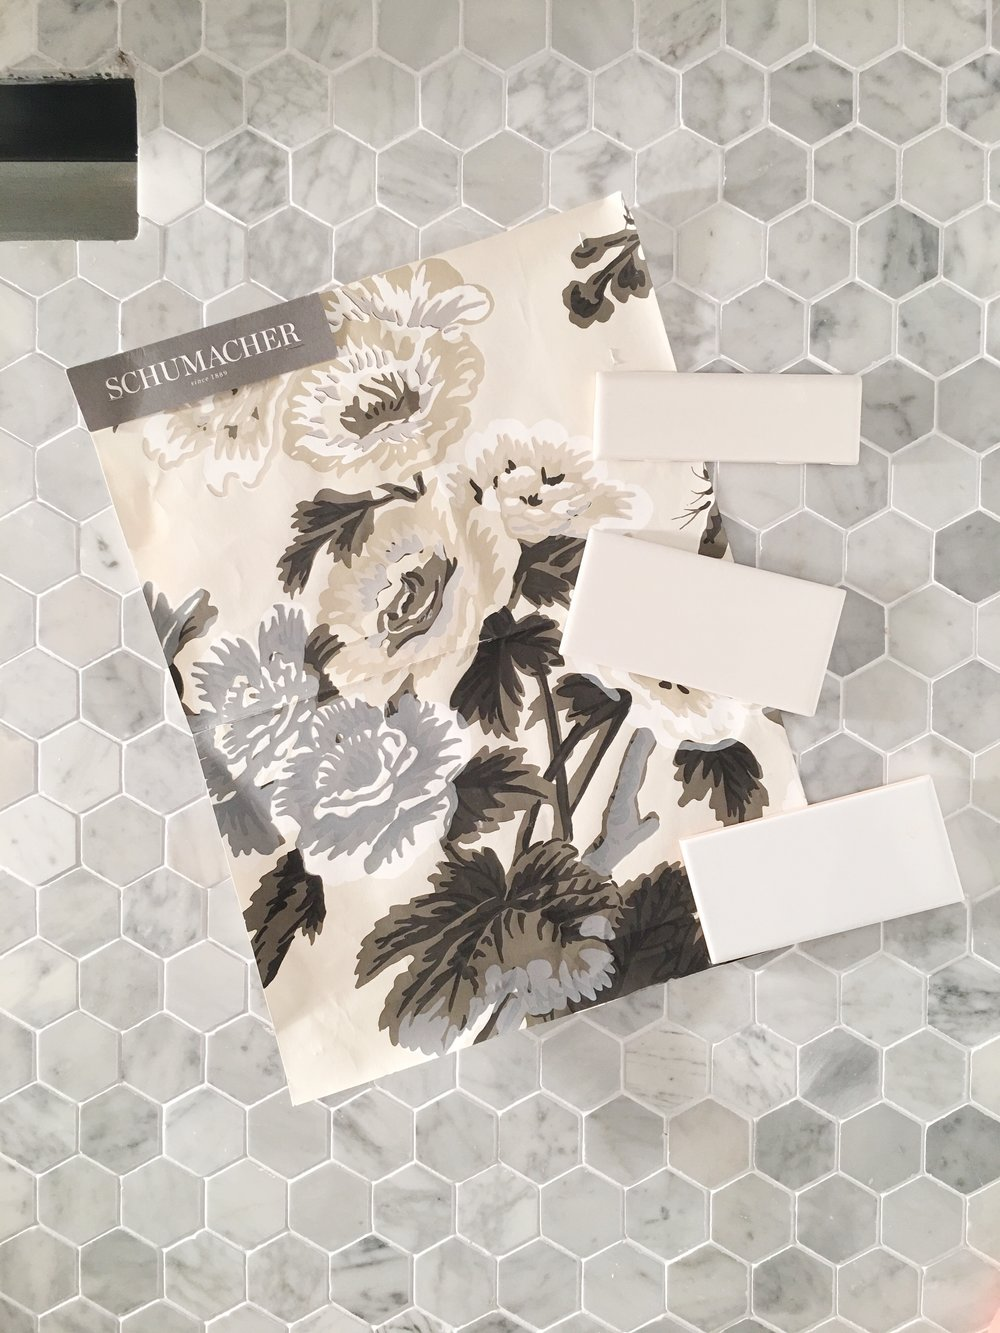 "Schumacher Pyne Hollyhock Charcoal Wallpaper, White Subway Tile, 2"" Marble Mosaic Hex Floor Tile- Interior Design by Laura Design Co."